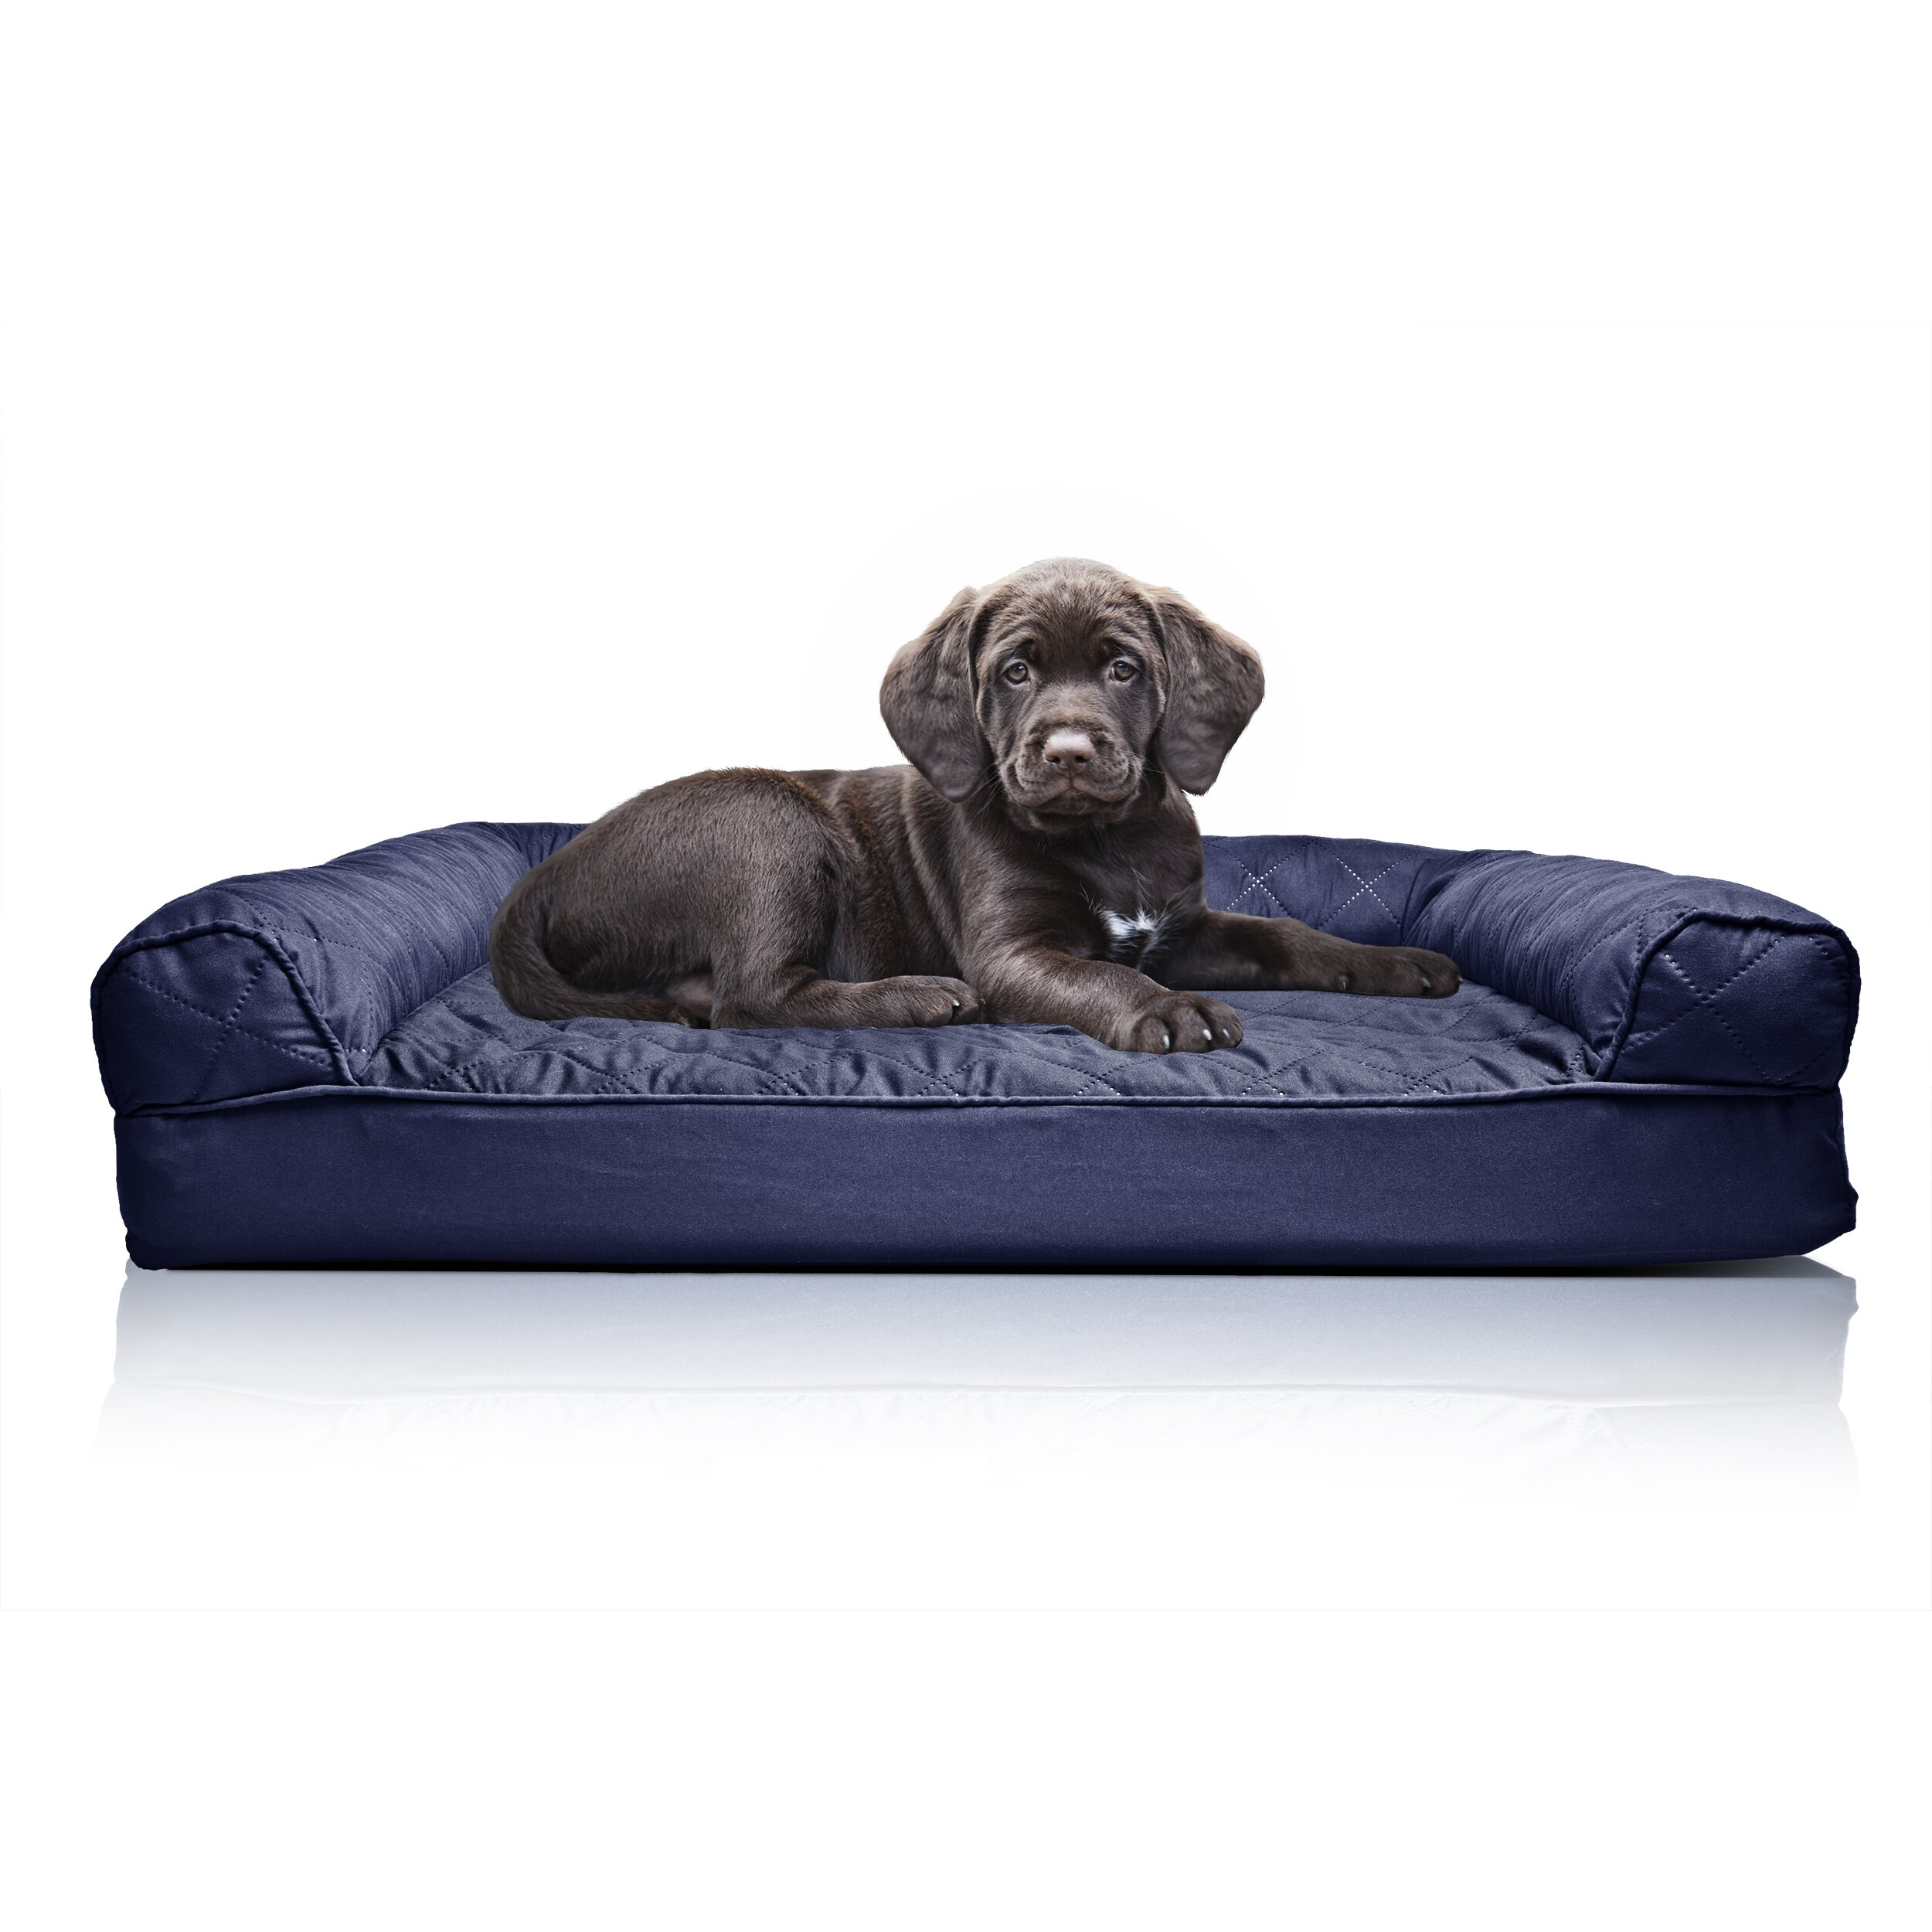 Zoey Tails Quilted Orthopedic Sofa Style Dog Bed Reviews Wayfair